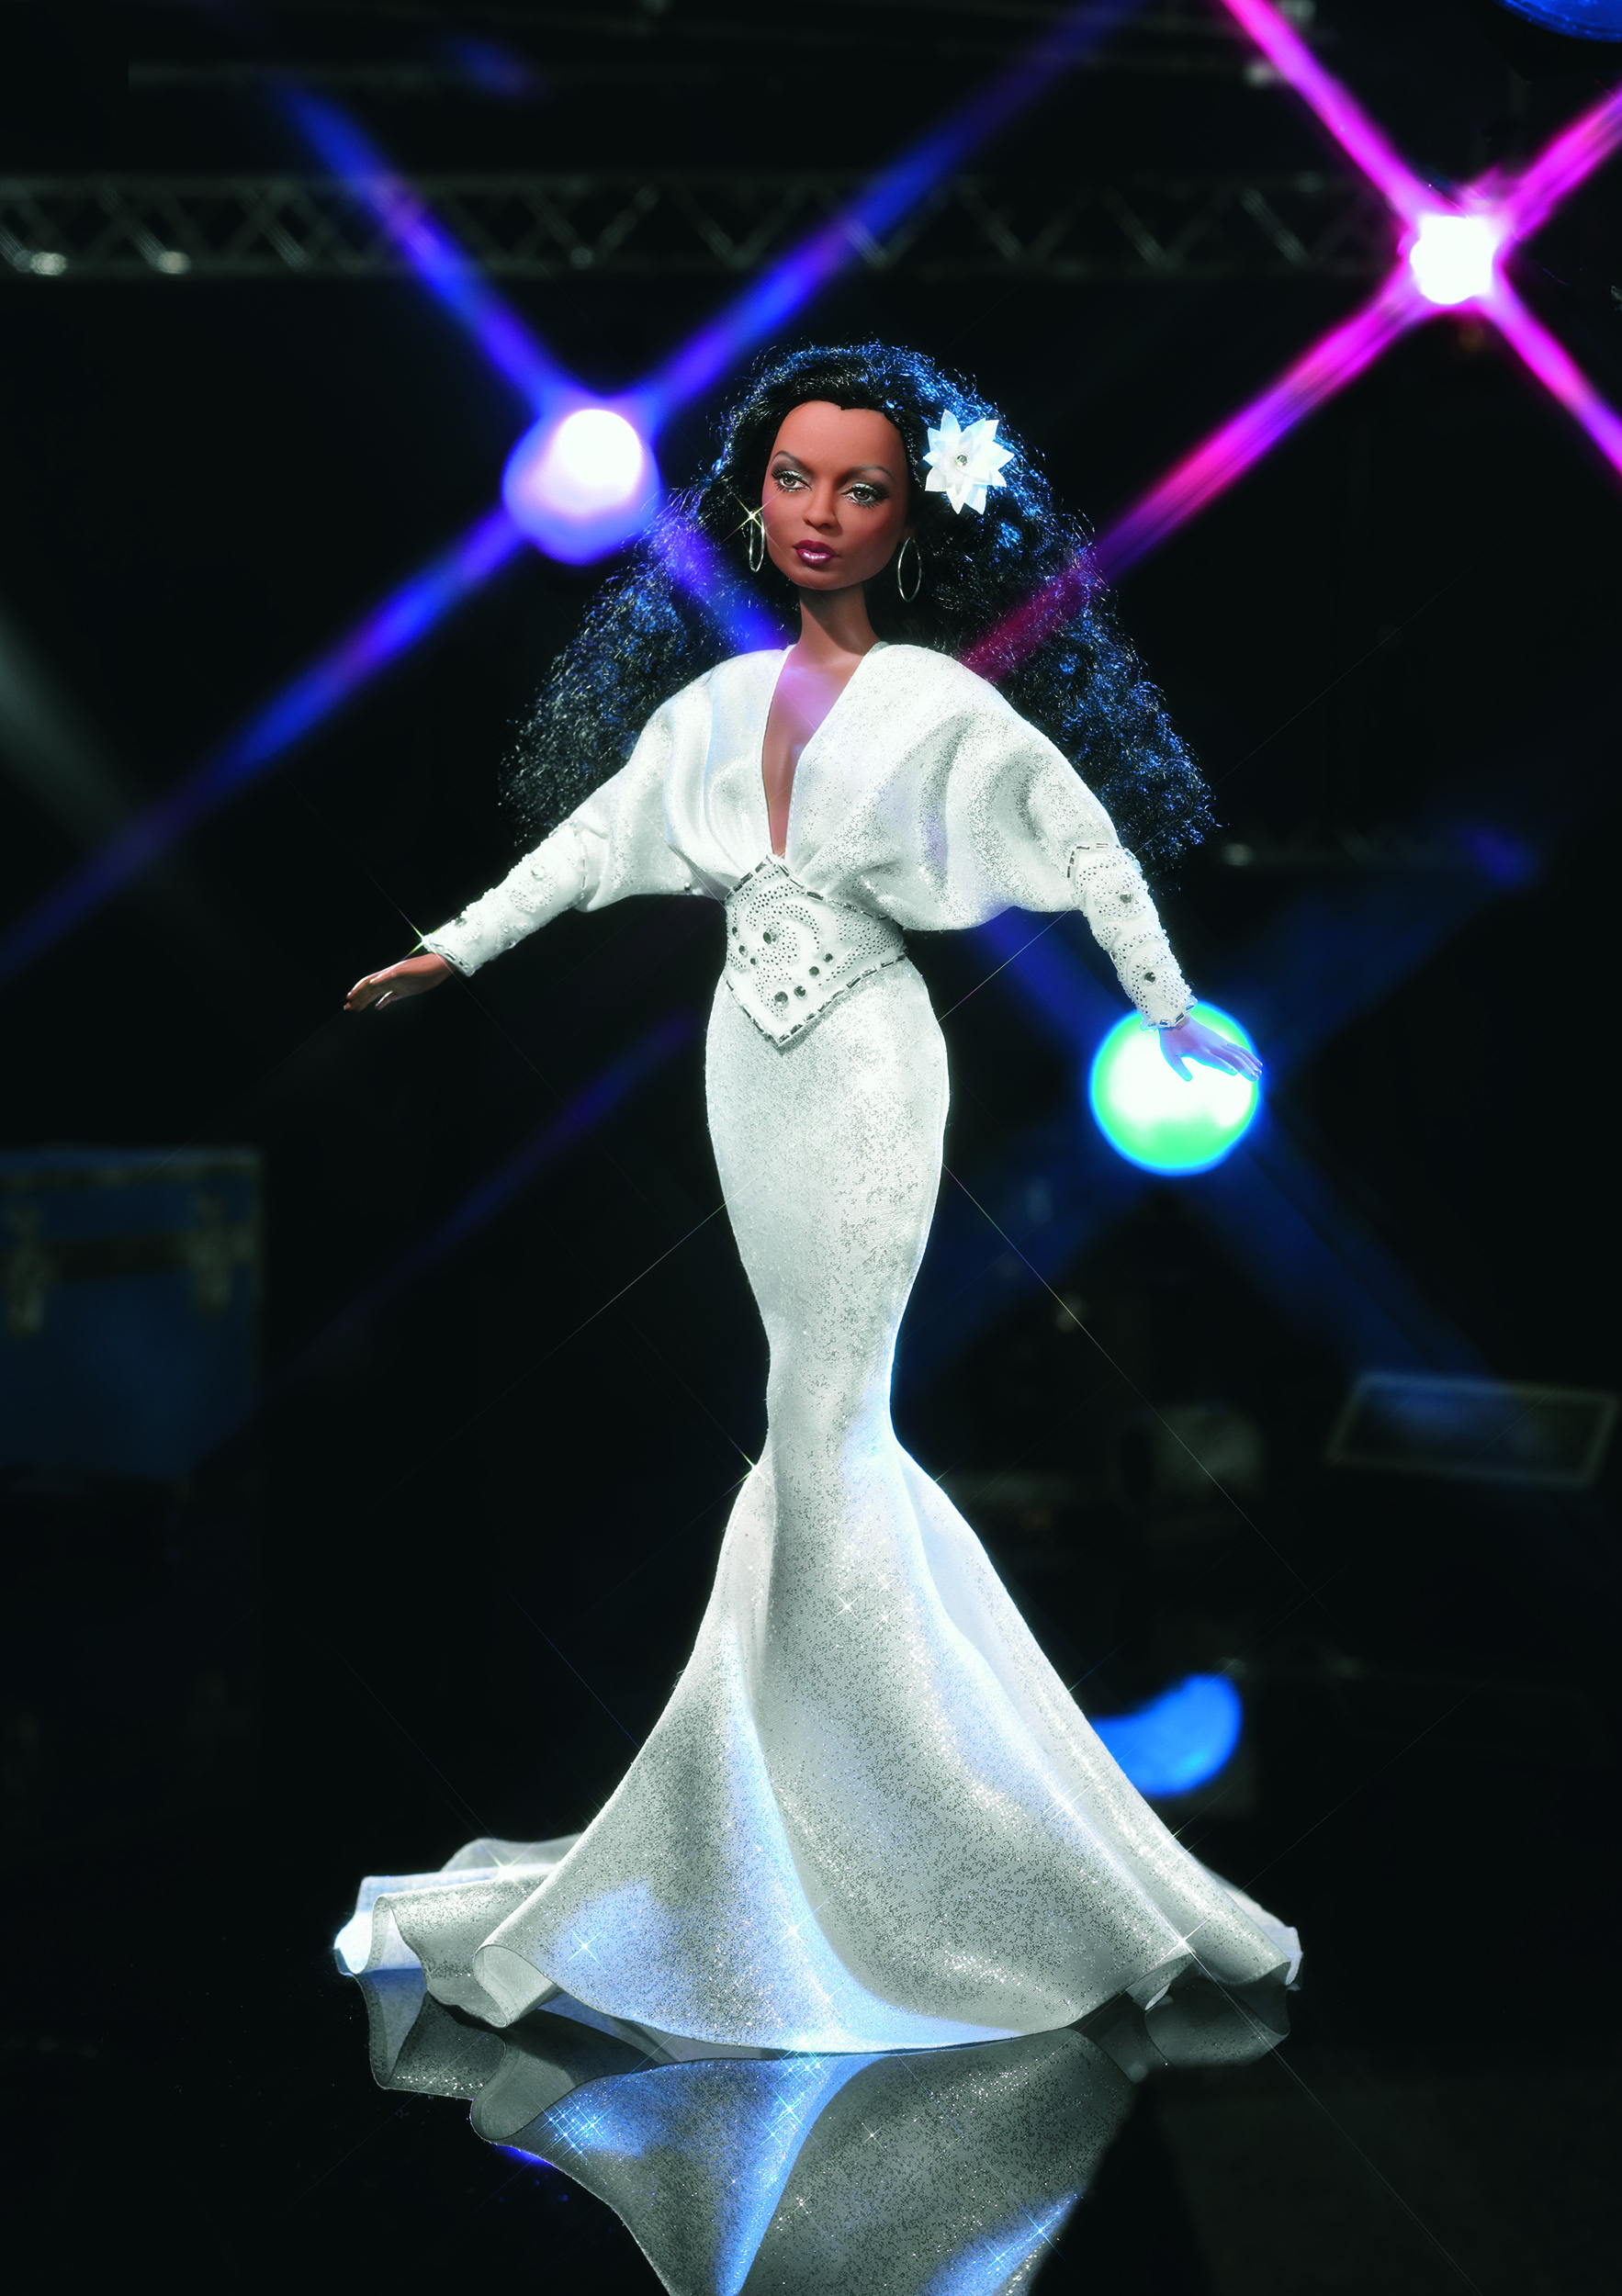 The Diana Ross Barbie,  released in 2003.